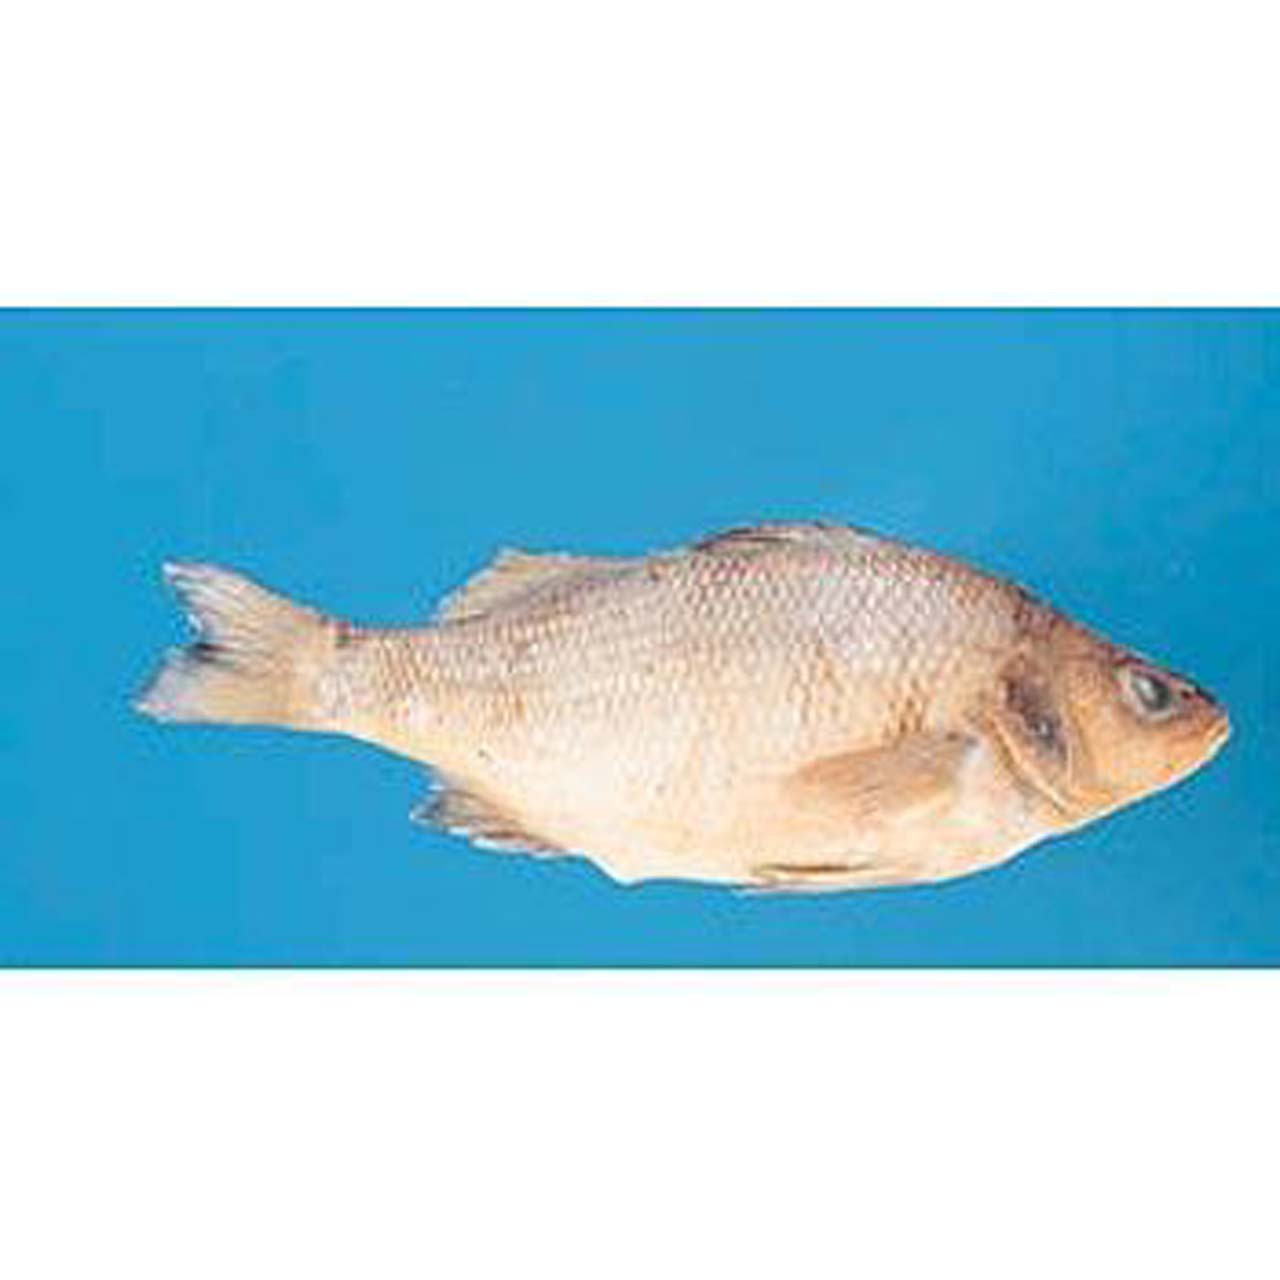 PM1.305 - Bony fish, dissectible, preserved in formalin, packed in Carosafe